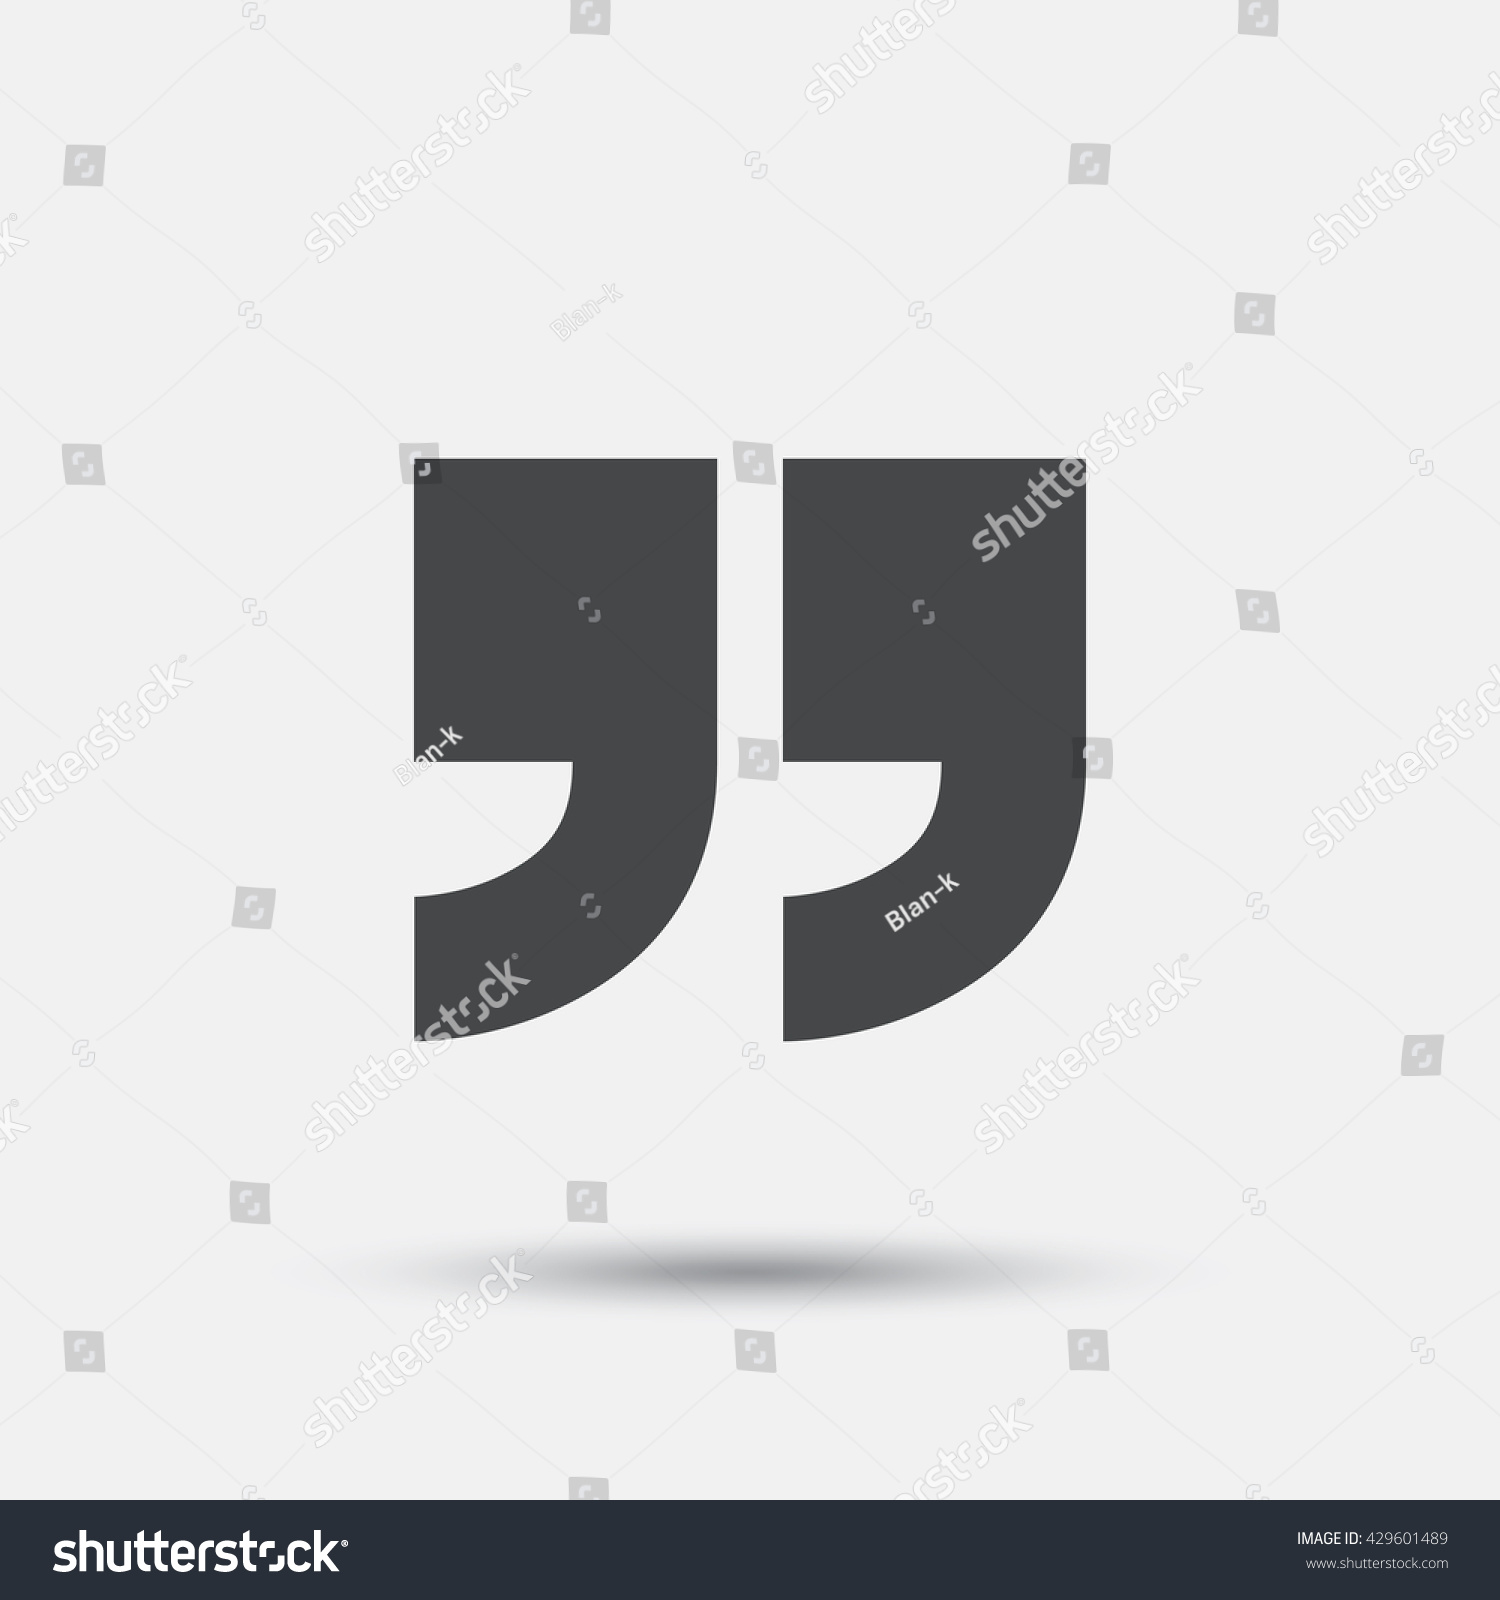 Quote Sign Icon Quotation Mark Symbol Stock Vector 429601489